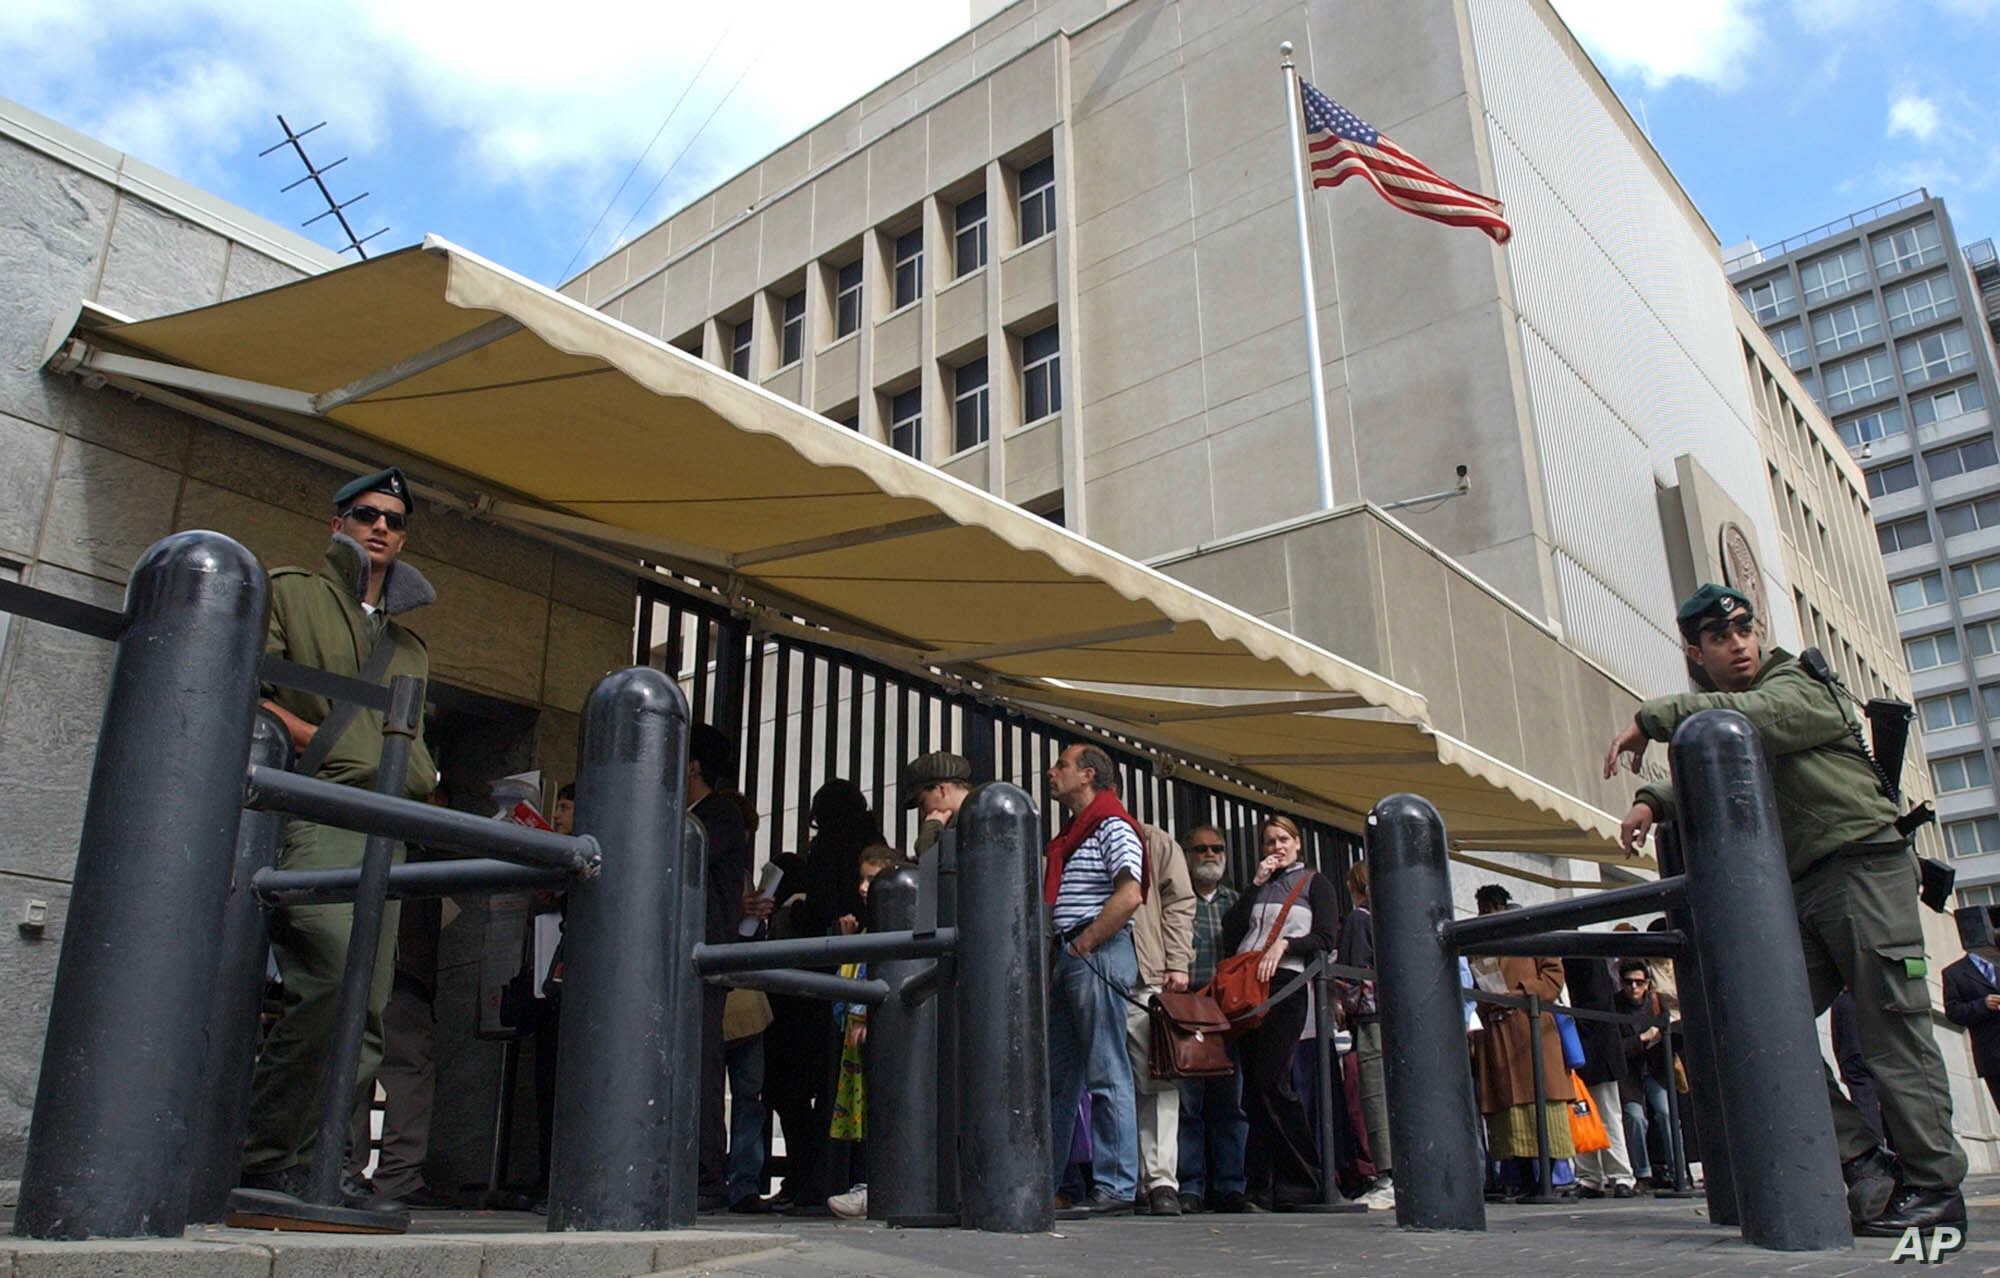 FILE - In this March 17, 2003 file photo, an Israeli border policemen guards the U.S. Embassy in Tel Aviv.